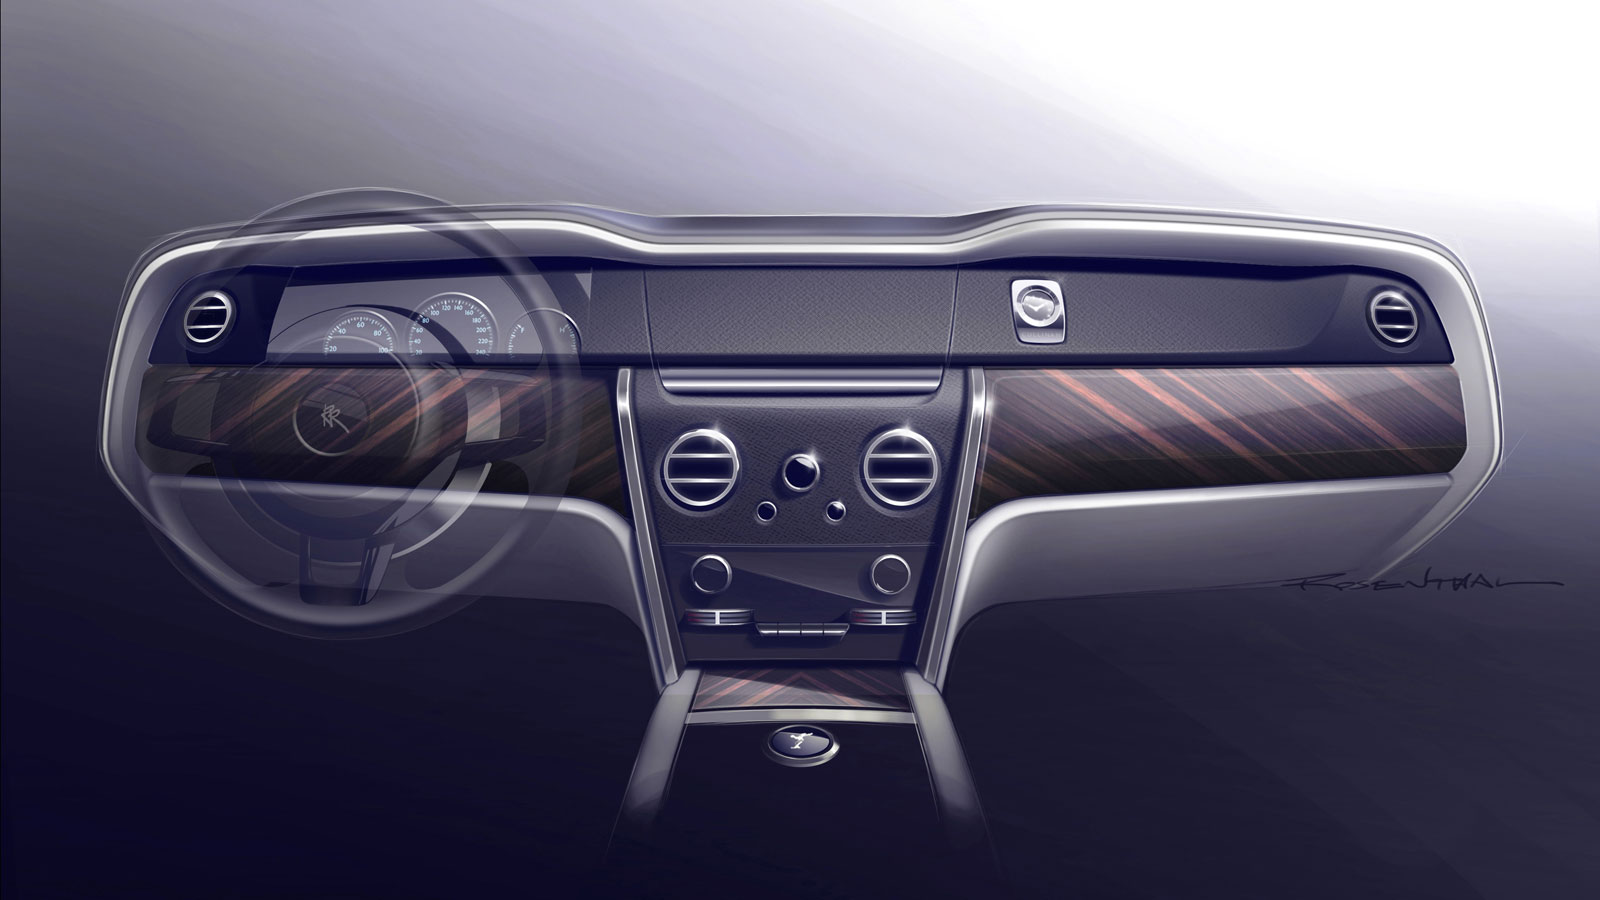 rolls-royce cullinan interior design sketch render